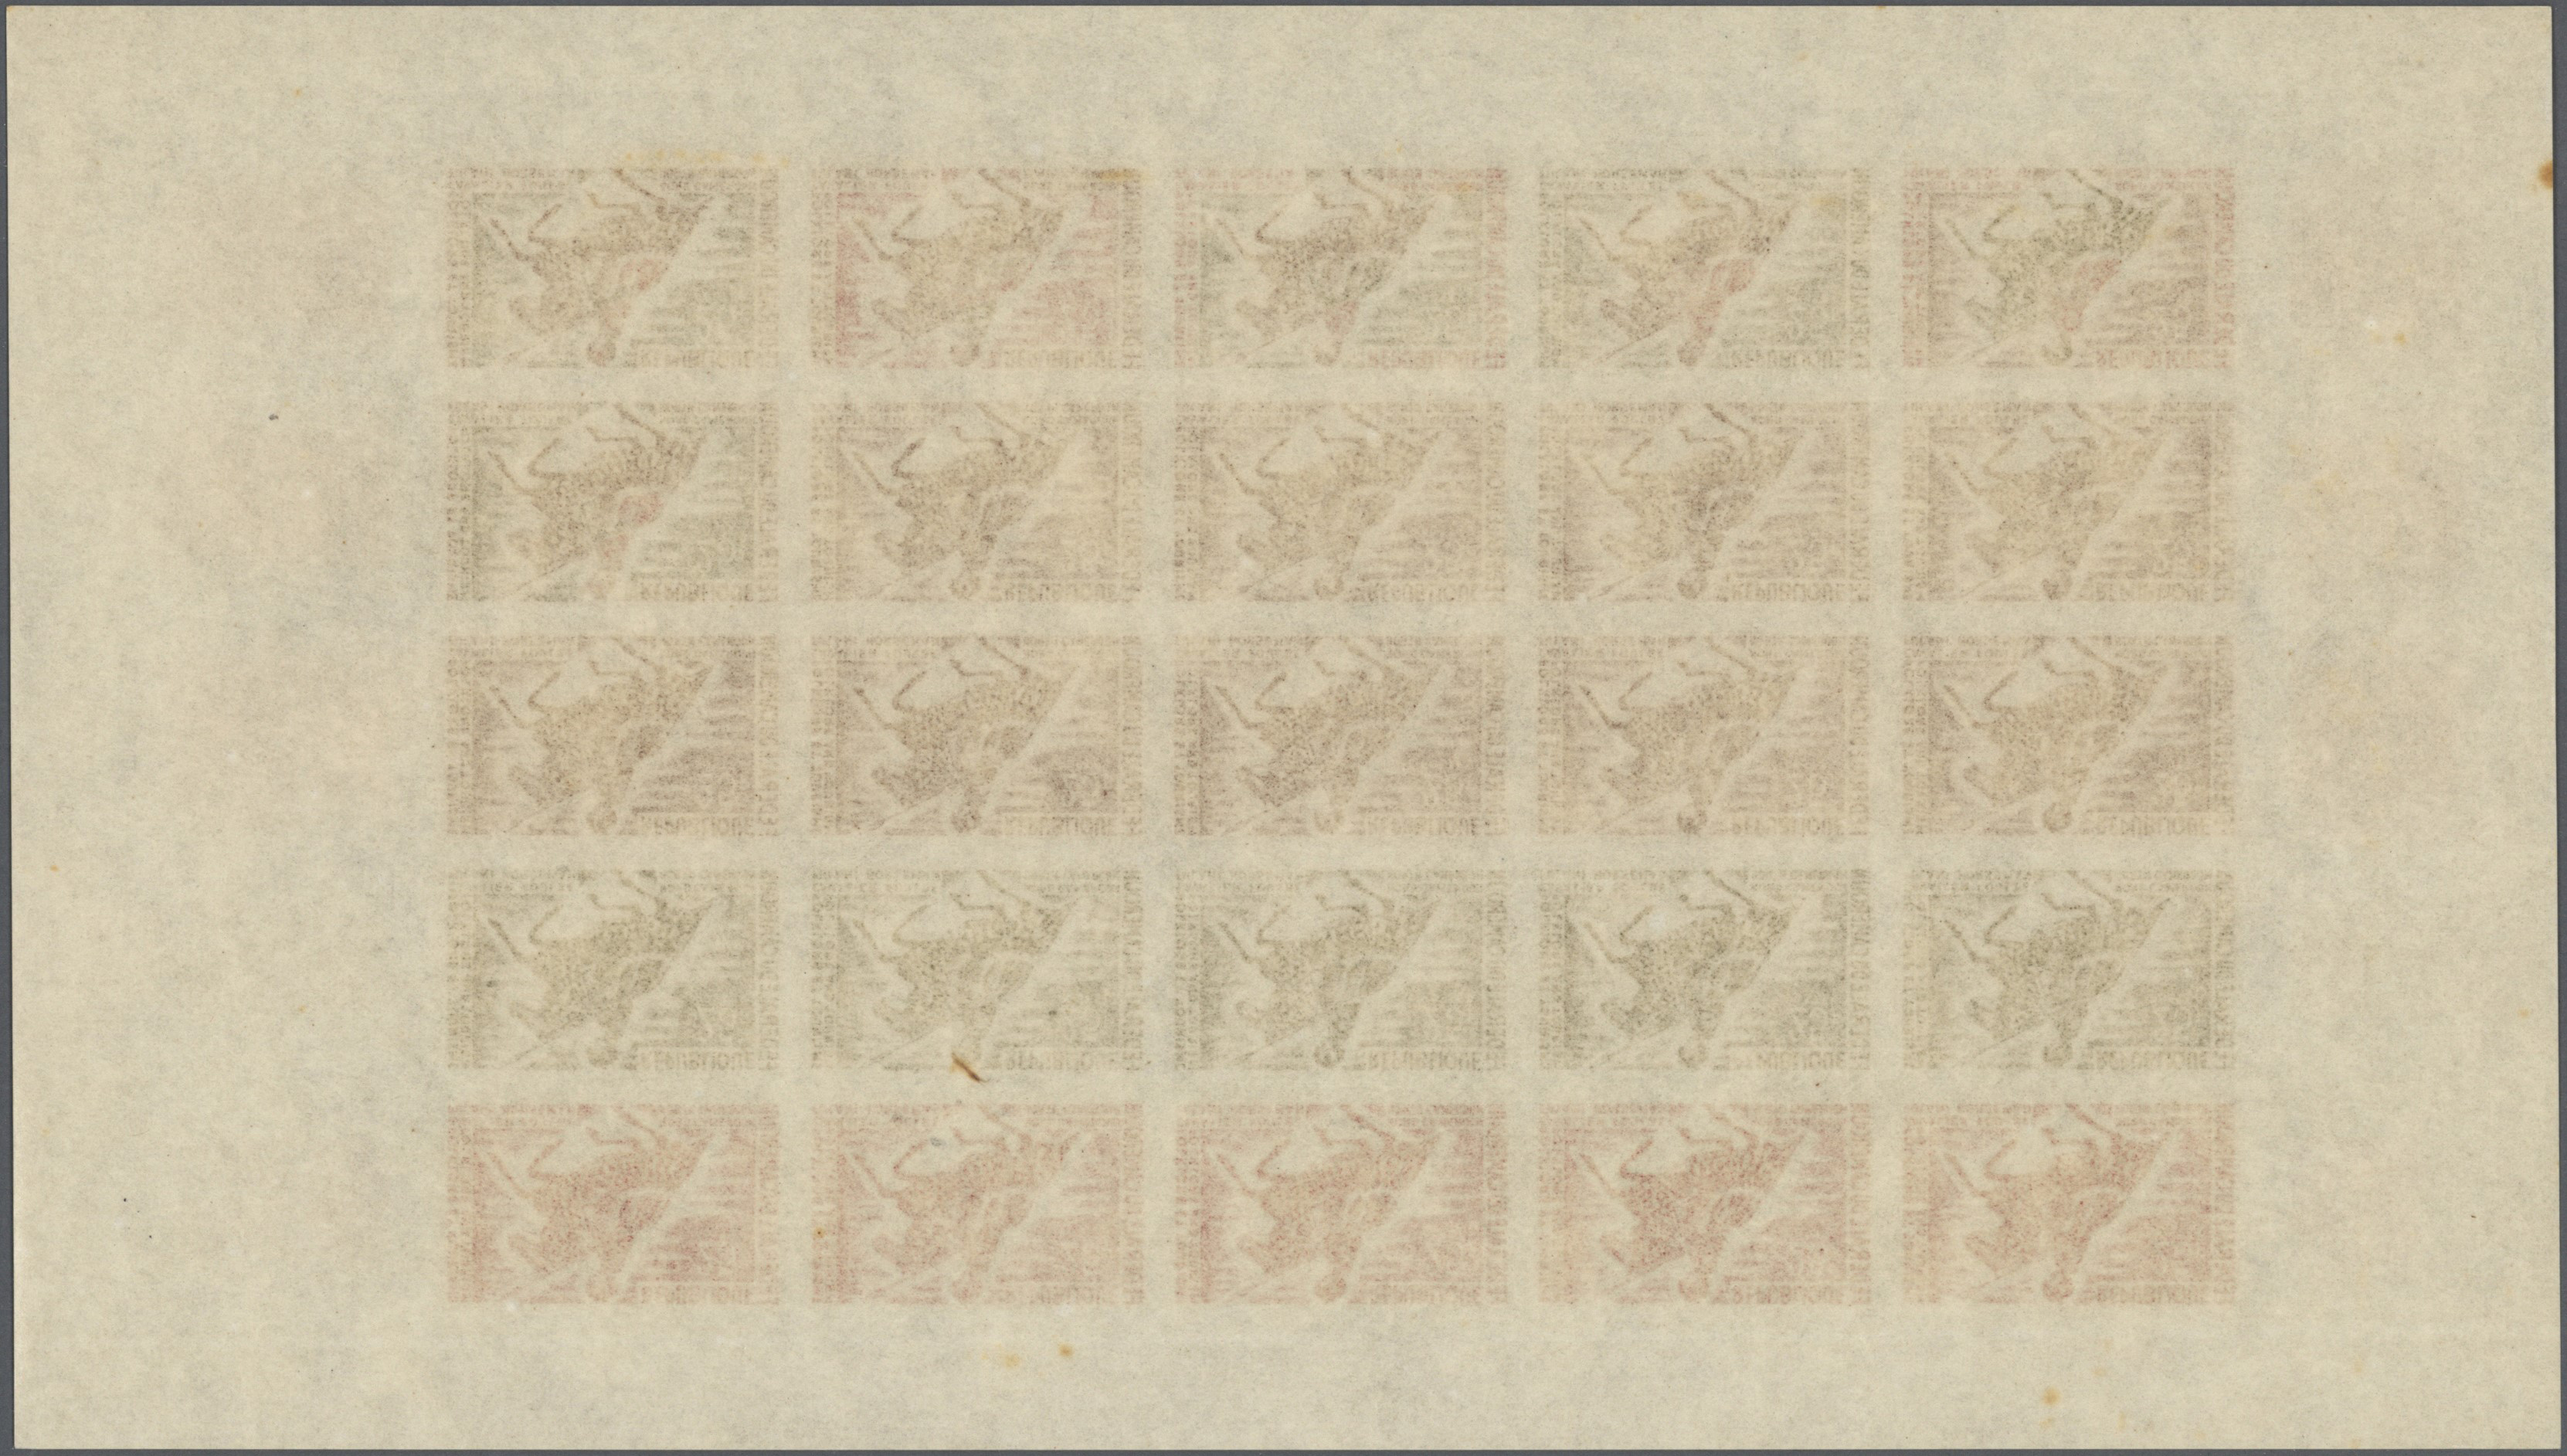 Lot 12666 - thematik: tiere-pferde / animals-horses  -  Auktionshaus Christoph Gärtner GmbH & Co. KG Single lots Philately Overseas & Europe. Auction #39 Day 4